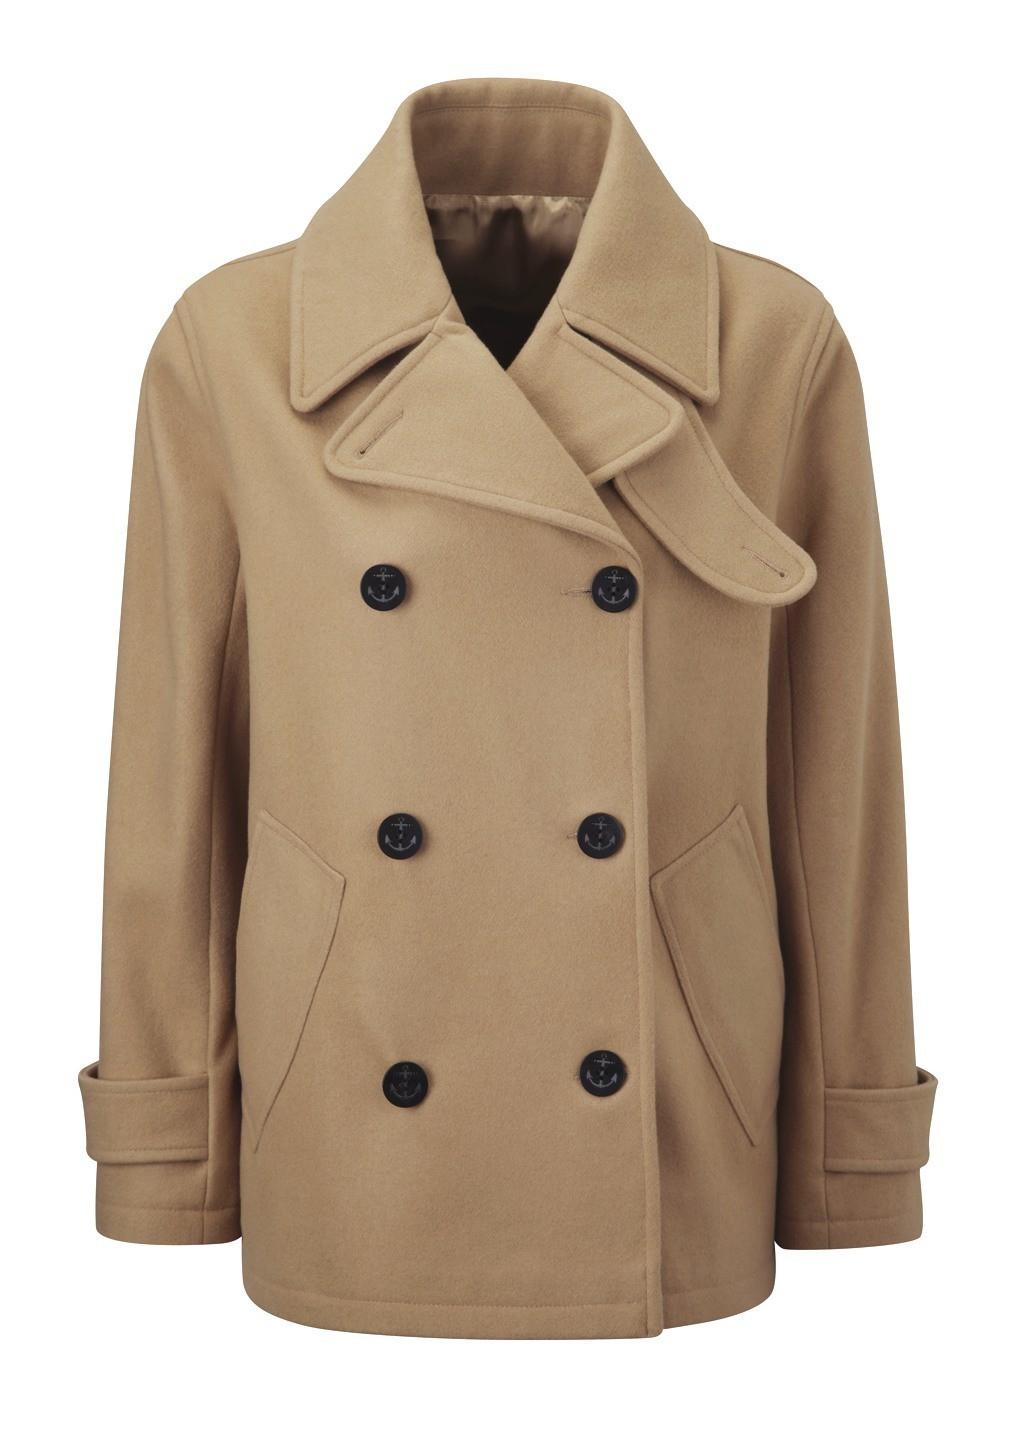 Womens lined Pea Coat (Reefer jacket) in Camel.